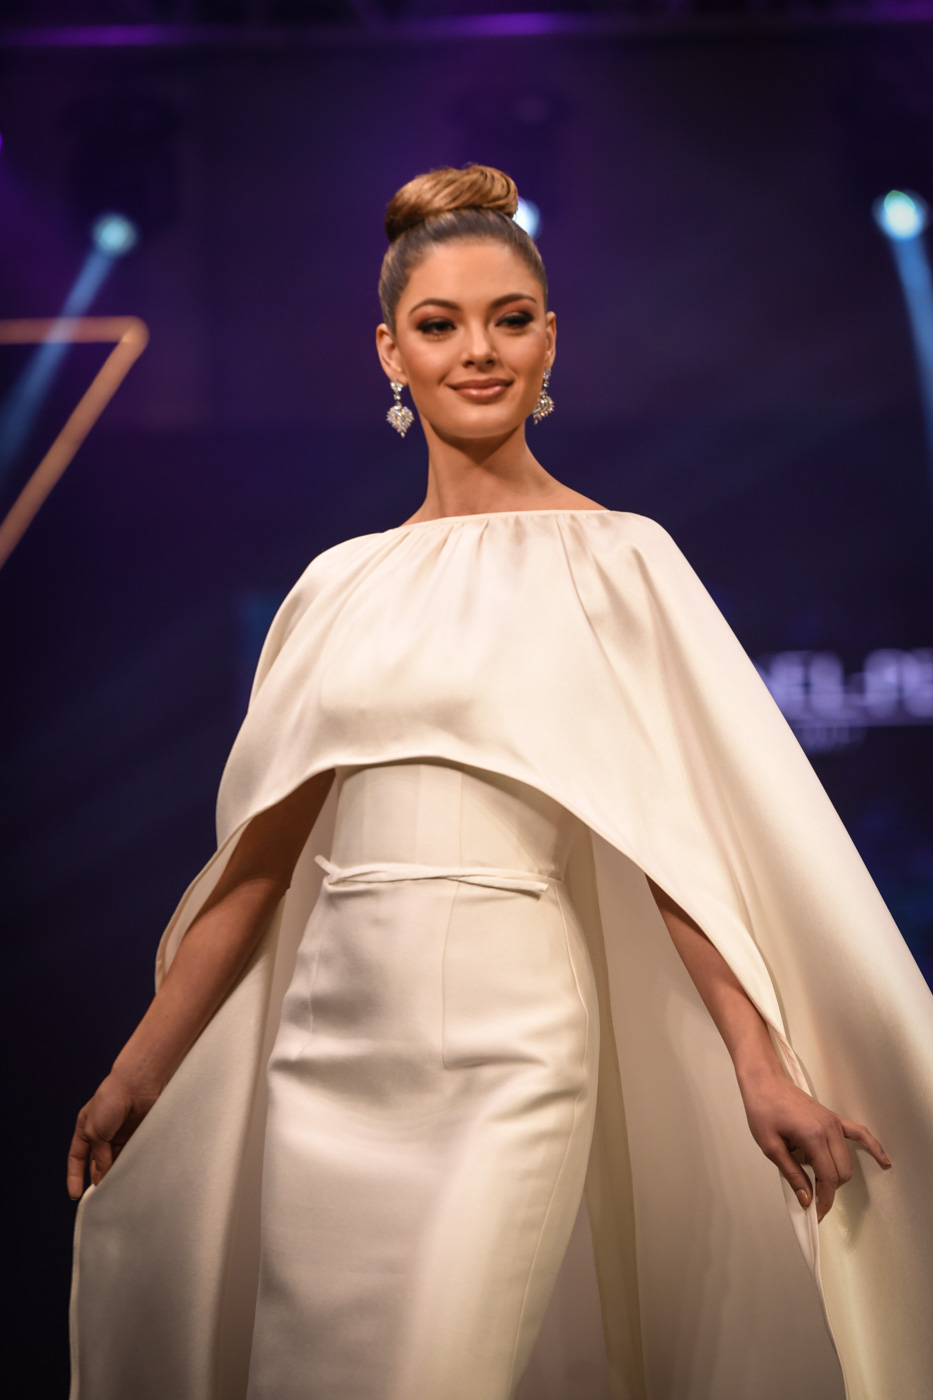 Miss Universe 2017 Demi-Leigh Nel-Peters in a Rajo Laurel creation